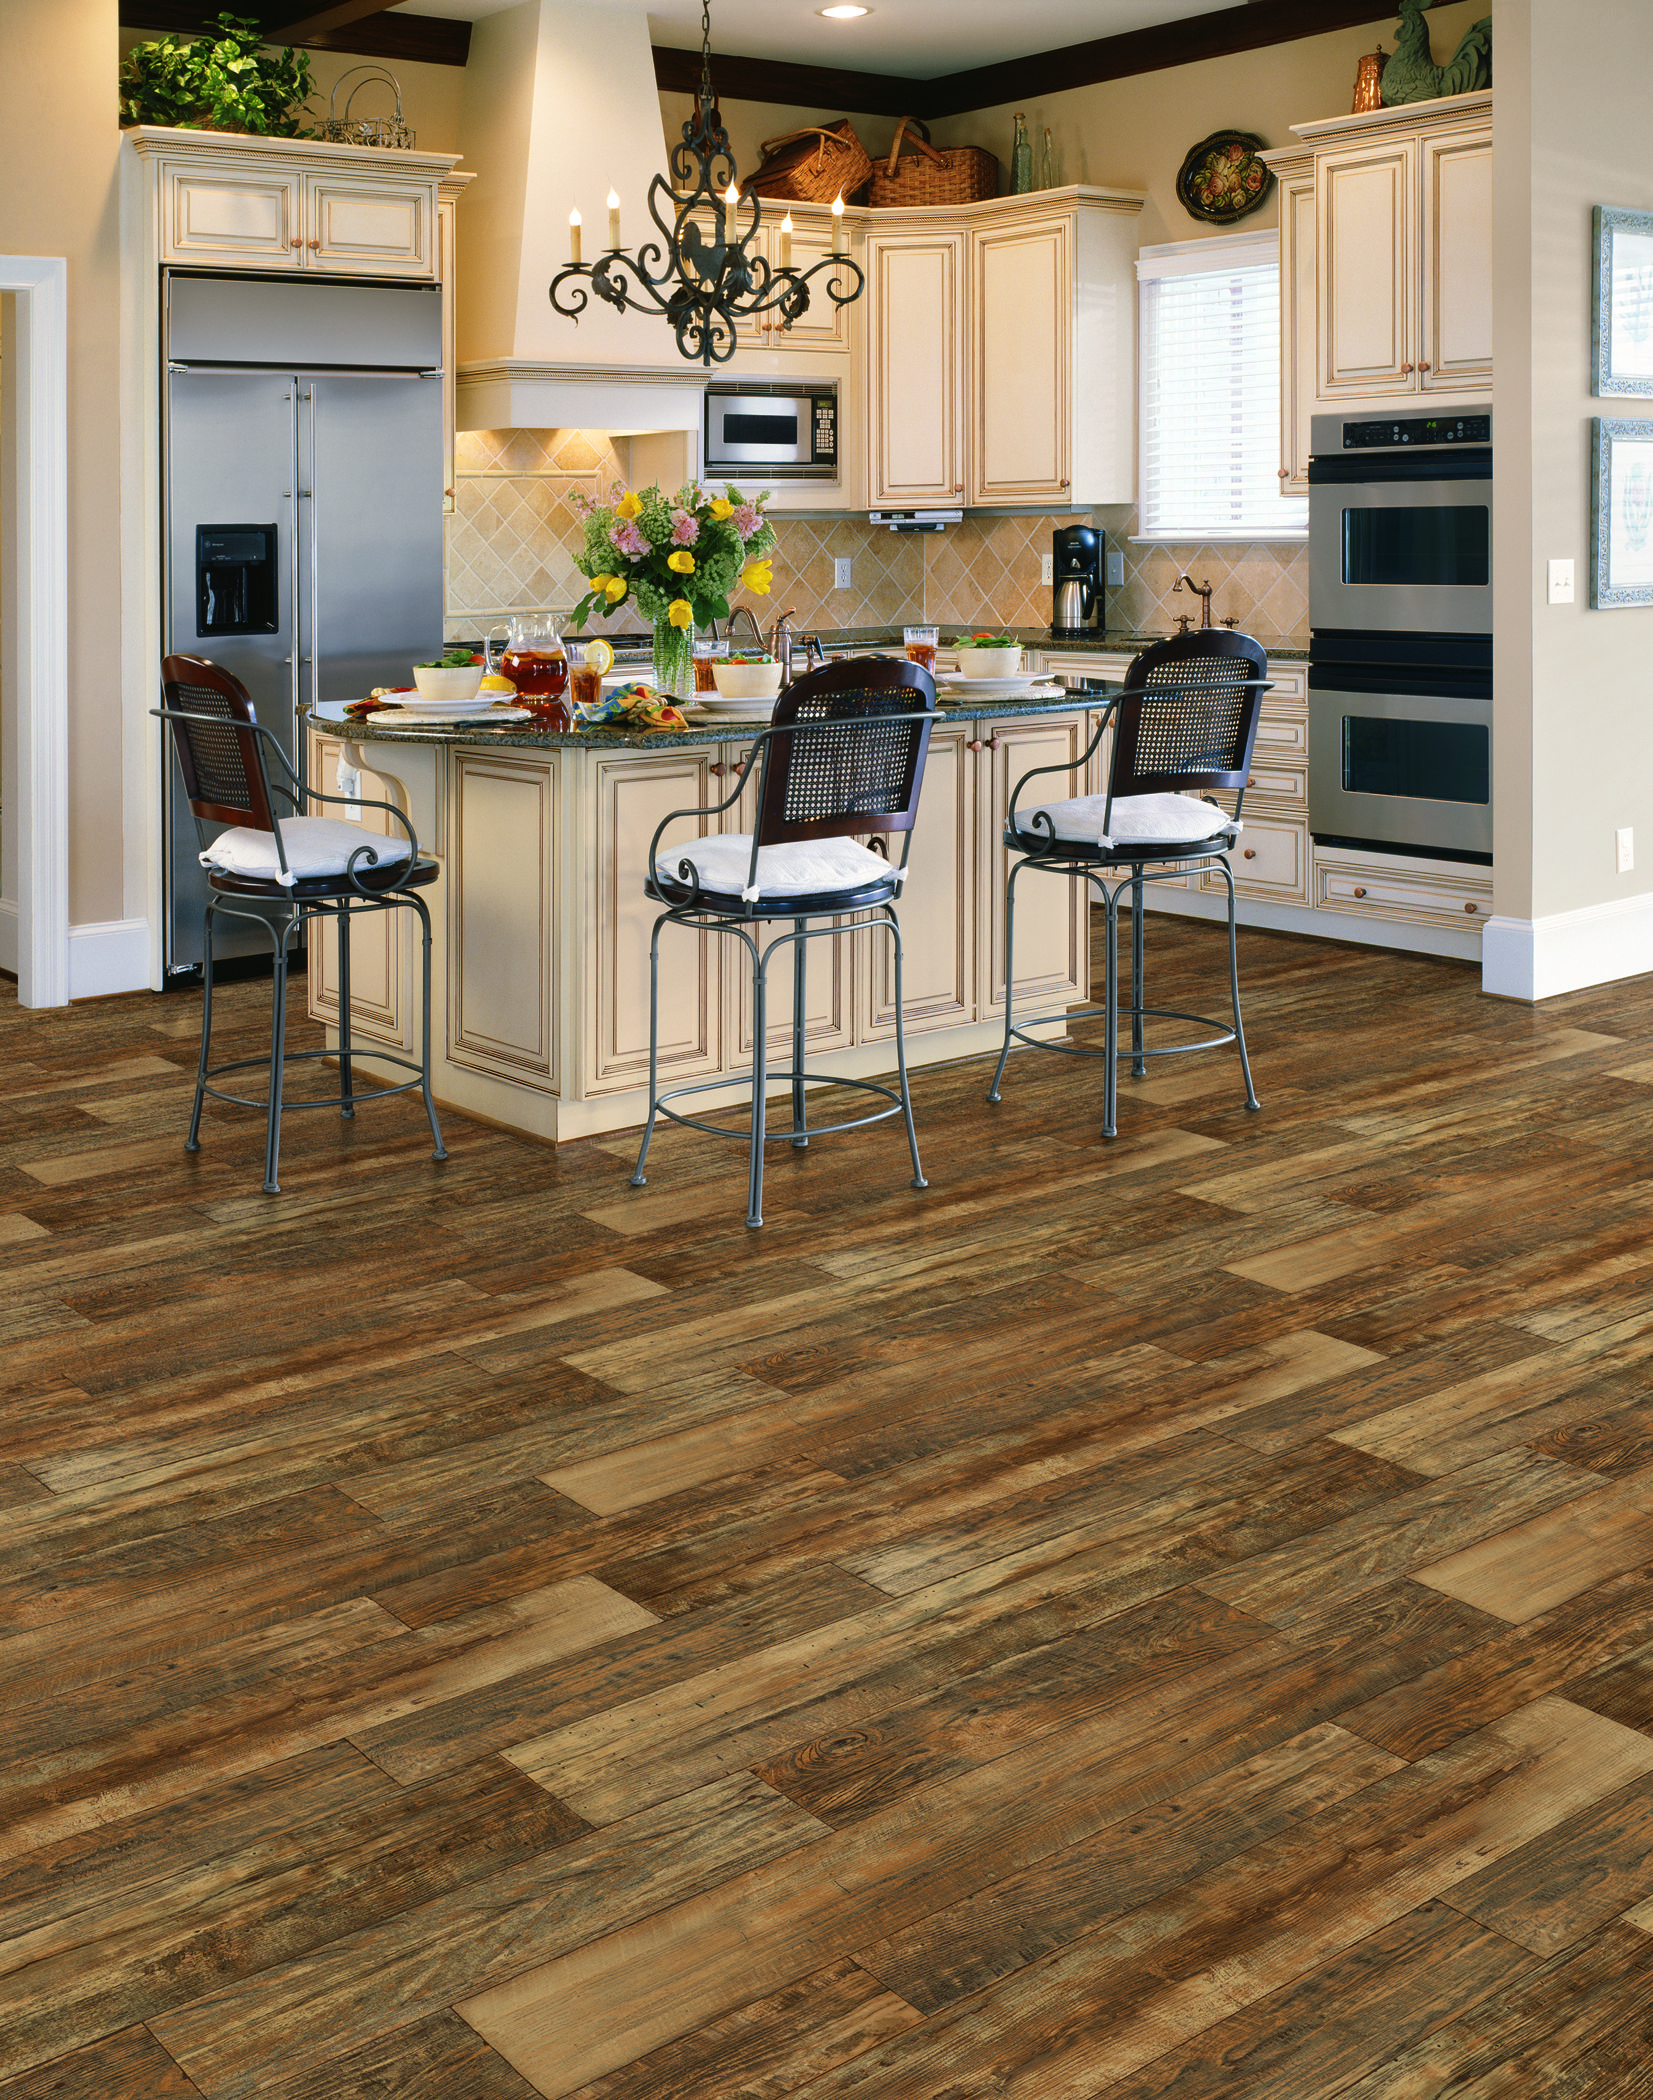 Rustic Plank in Honeytone 04500 (With images) Wide plank